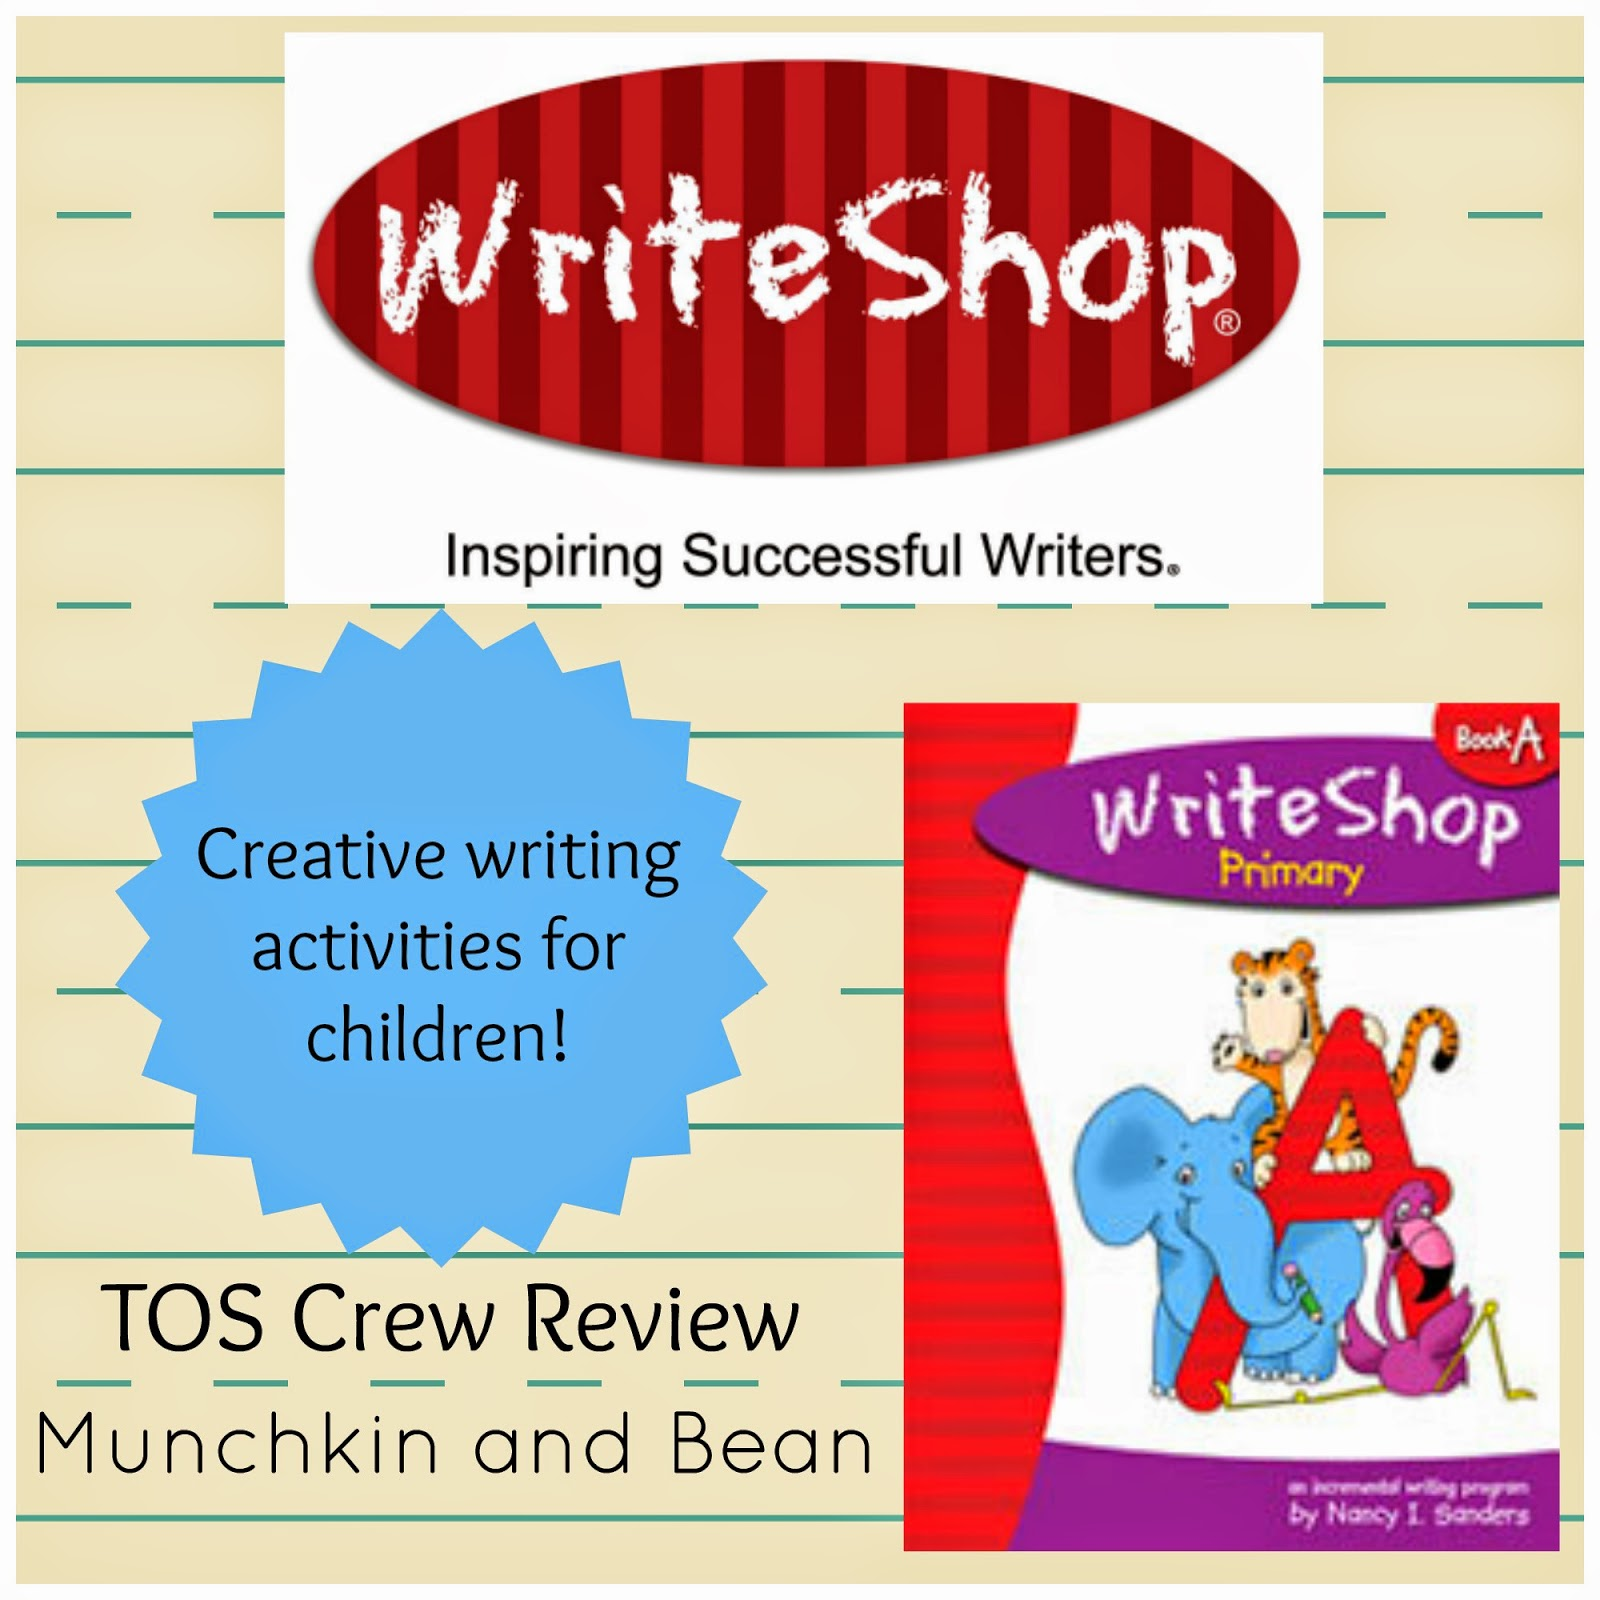 WriteShop is an incremental writing program for children that inspires them  to become successful writers! They offer resources for children in grades  ...